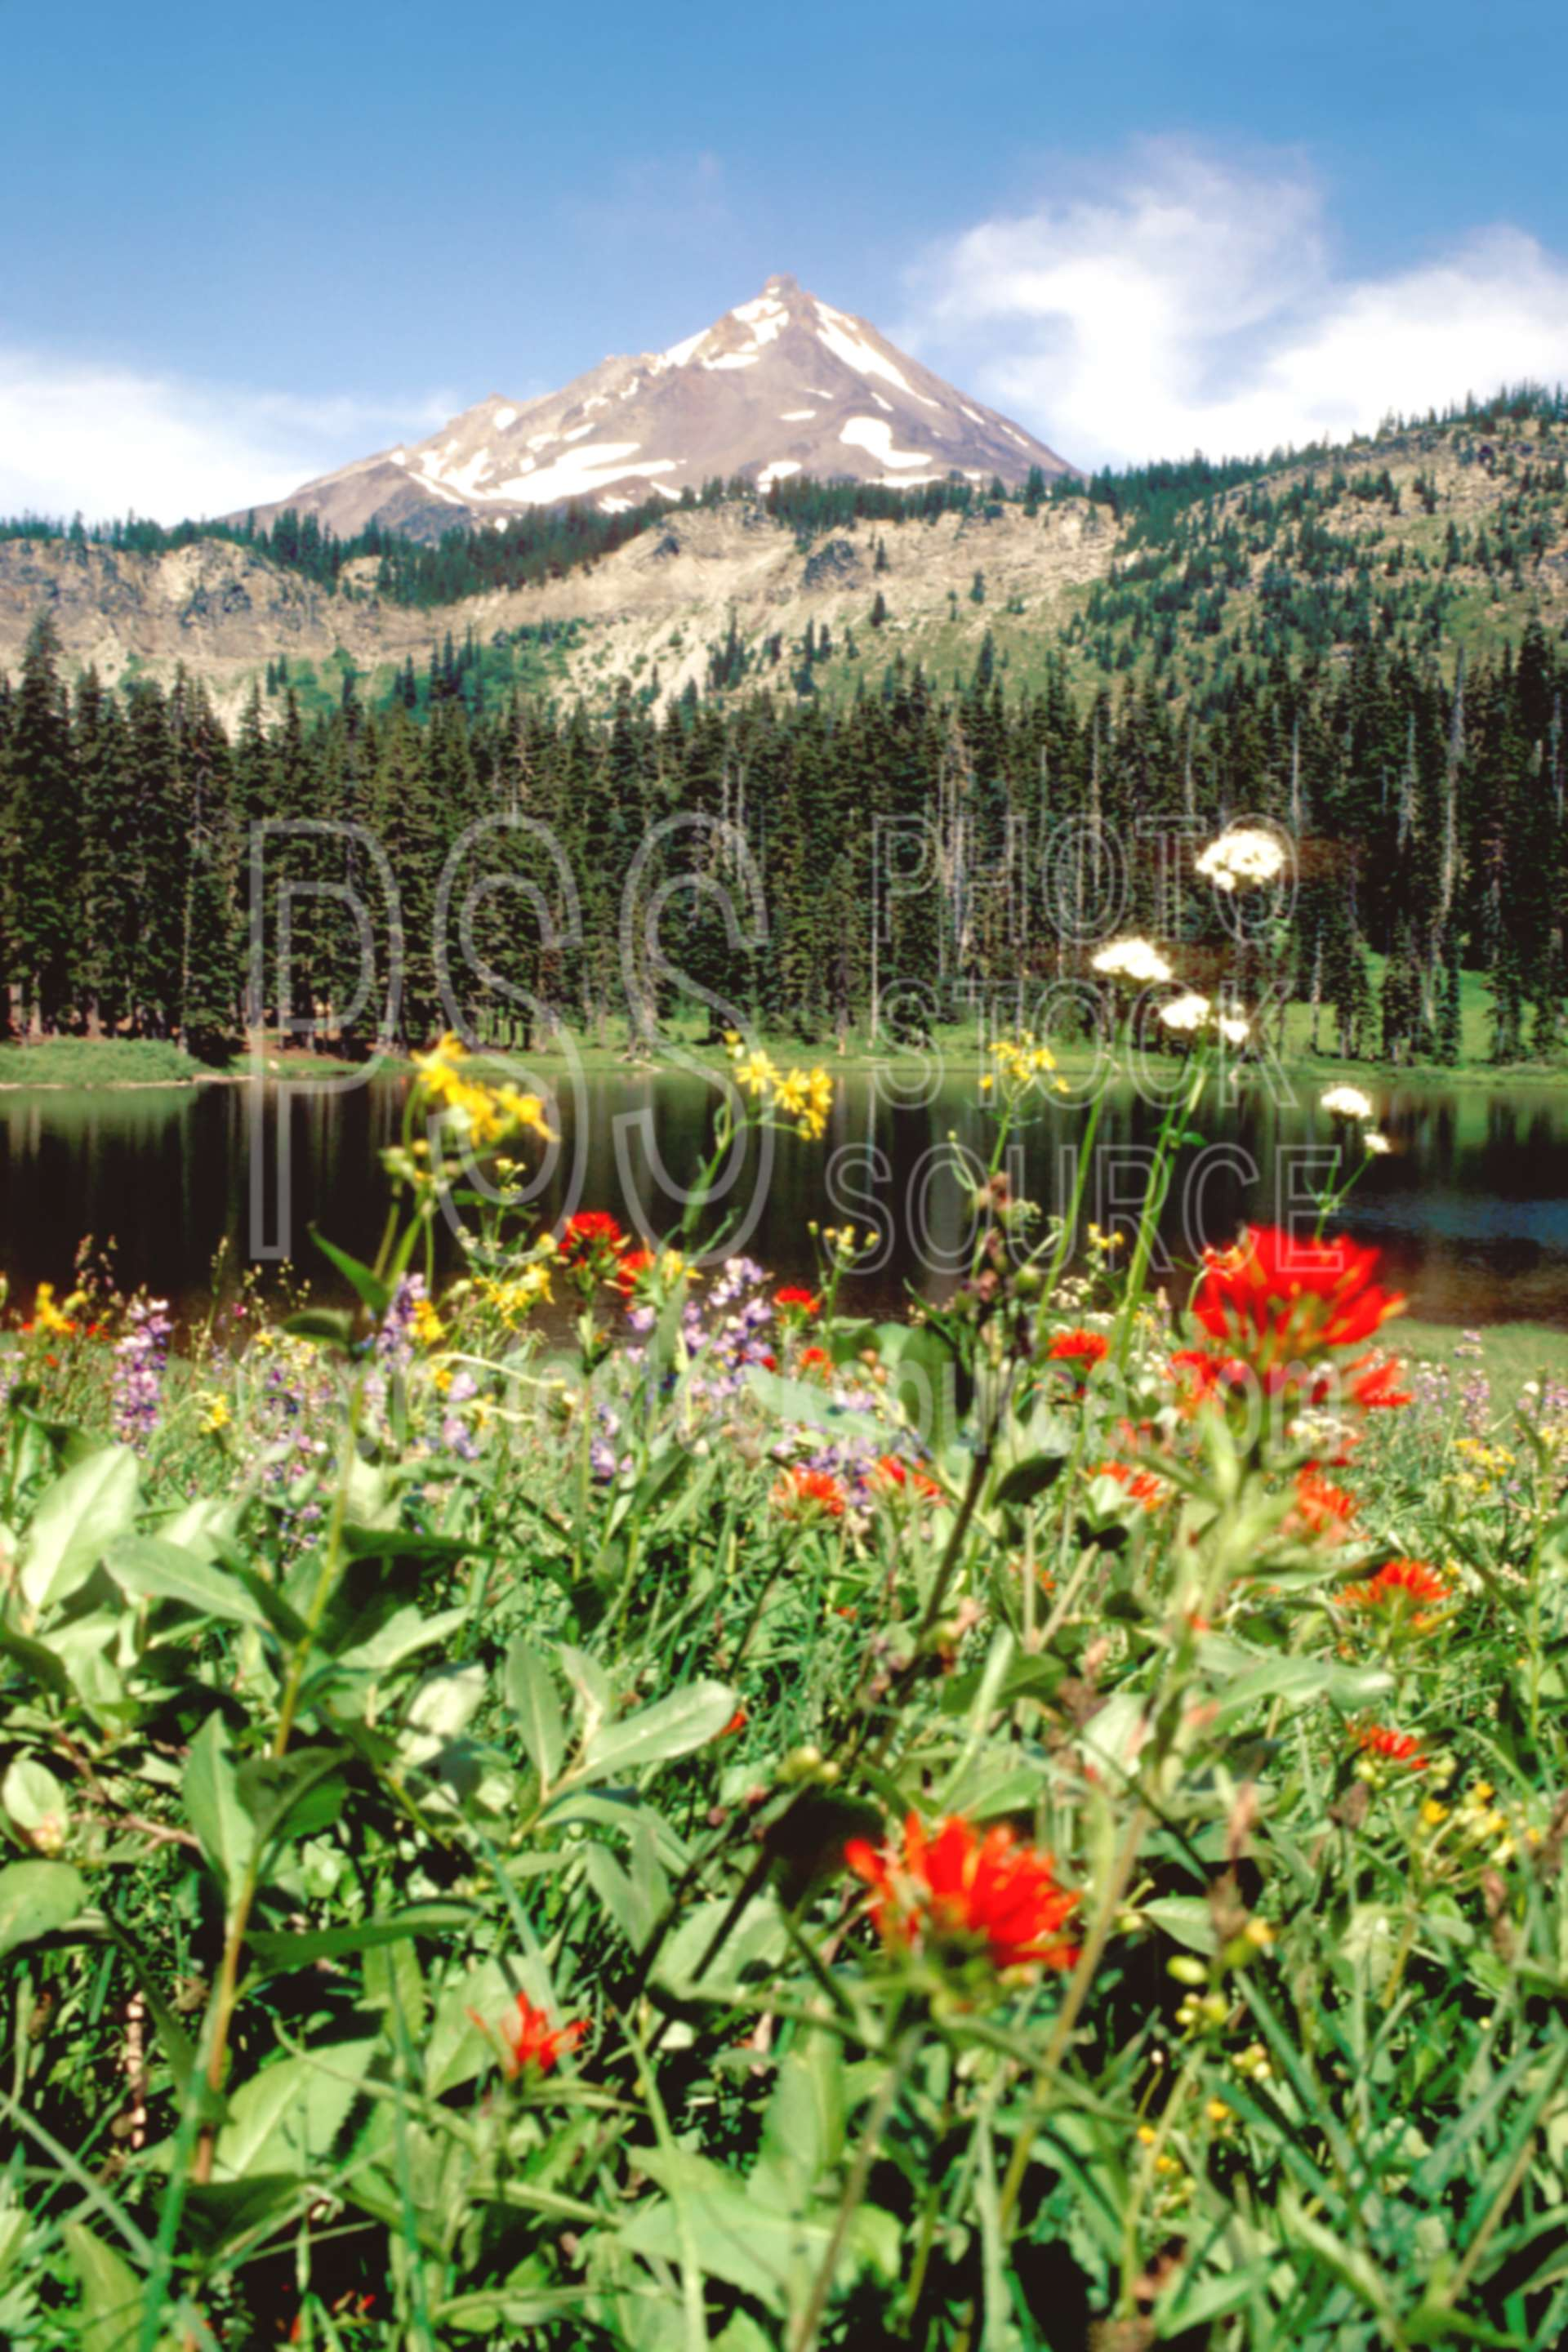 Mt. Jefferson Hanks Lake,flower,hanks lake,mt. jefferson,wildflower,mount,plant,usas,lakes rivers,mountains,plants